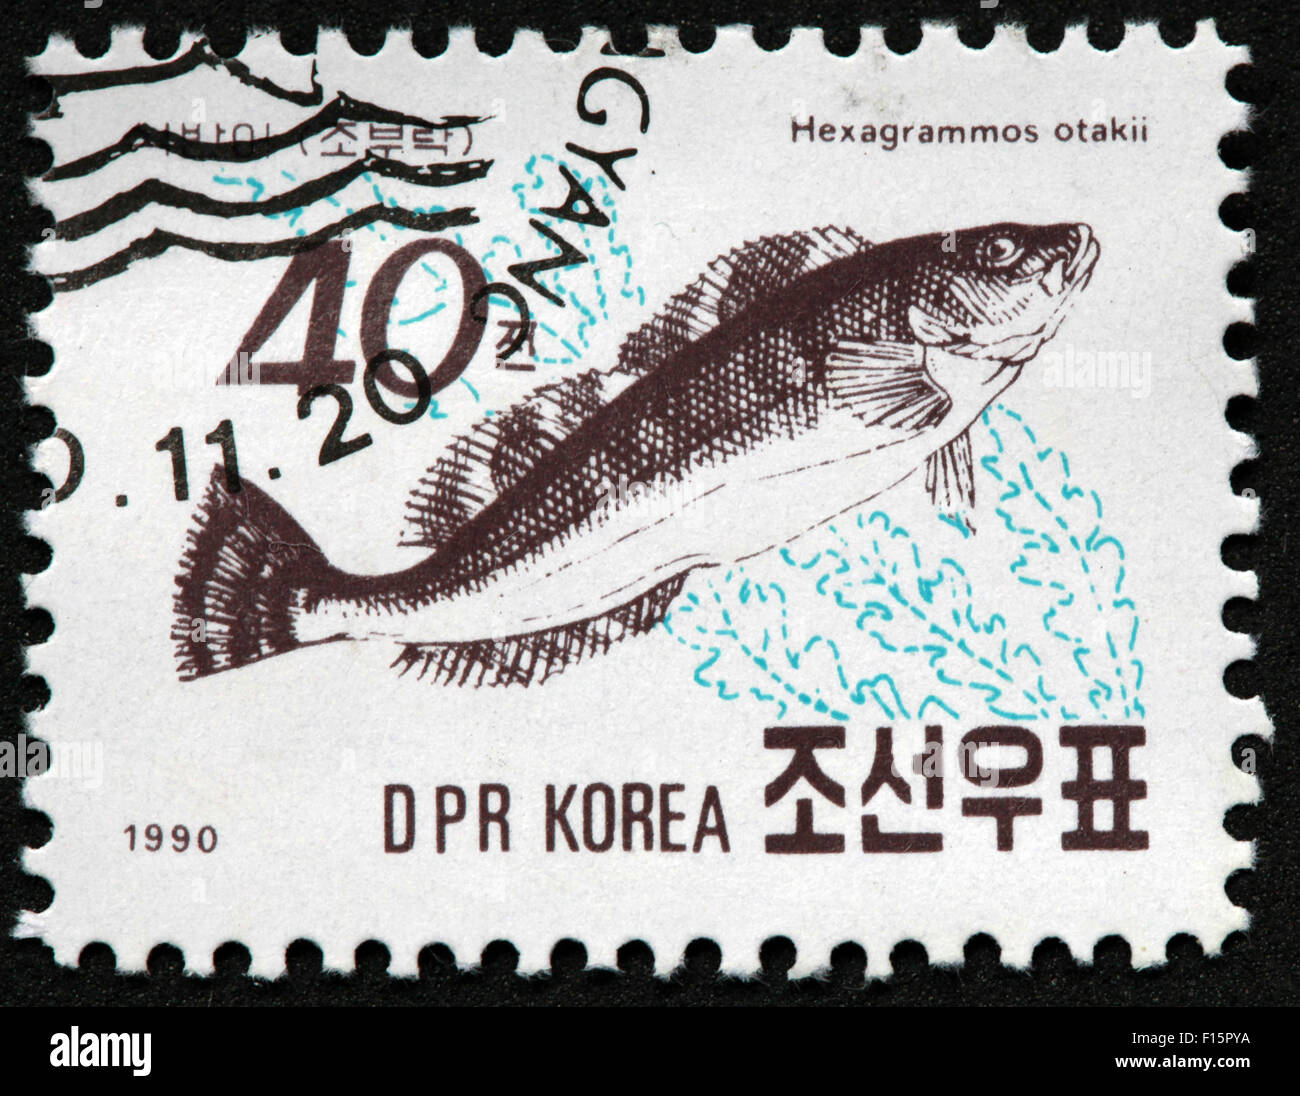 DPR Korea 1990 Hexagrammos otakii fish weed brown stamp - Stock Image